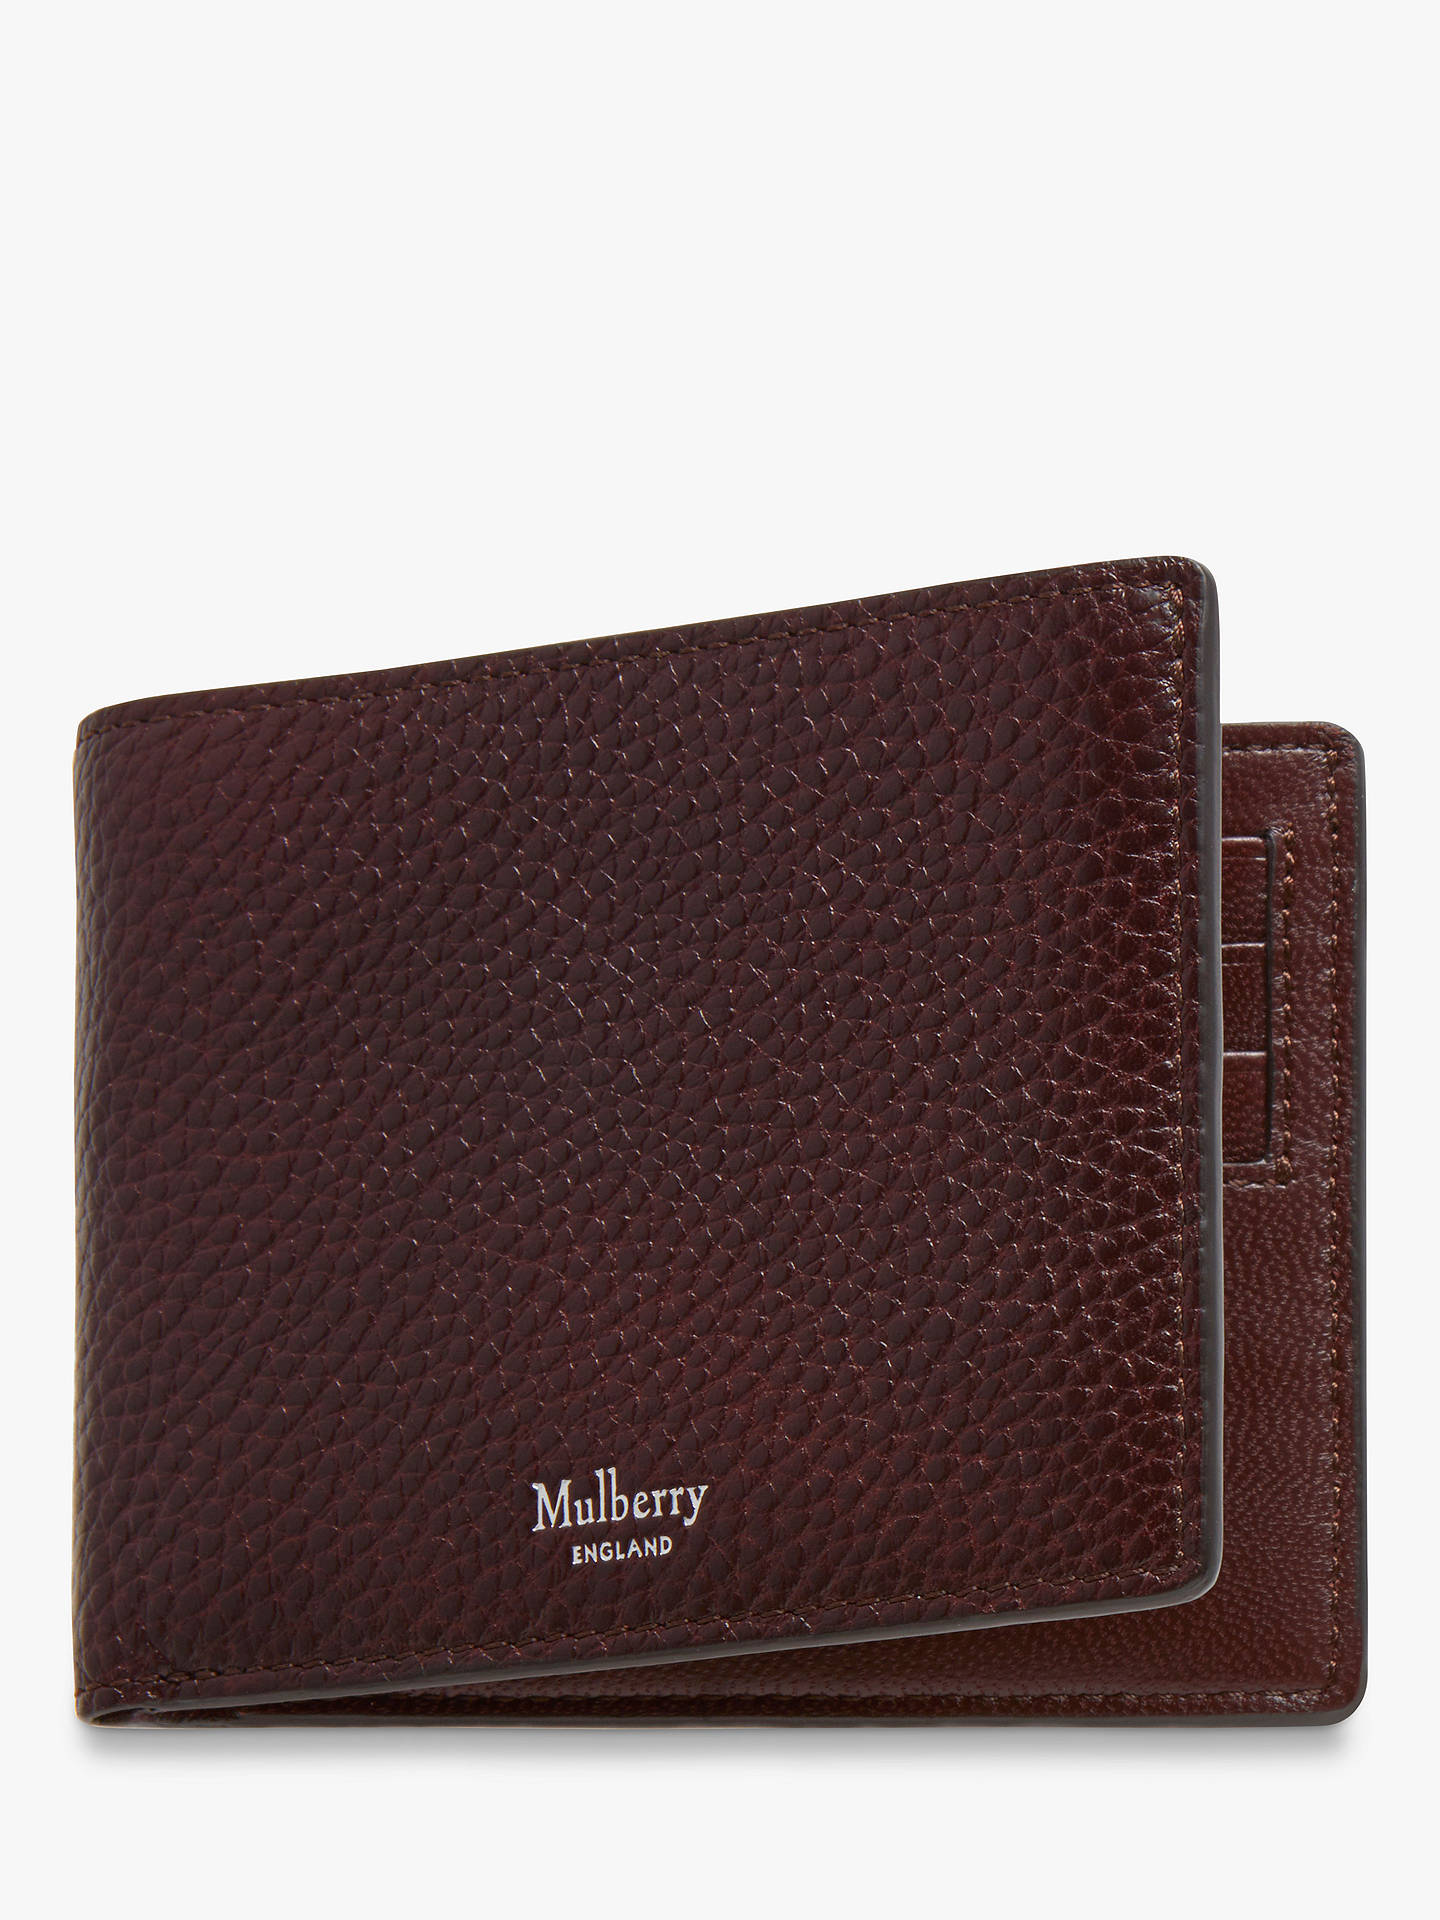 877d544b6469 Buy Mulberry 8 Card Grain Veg Tanned Leather Wallet